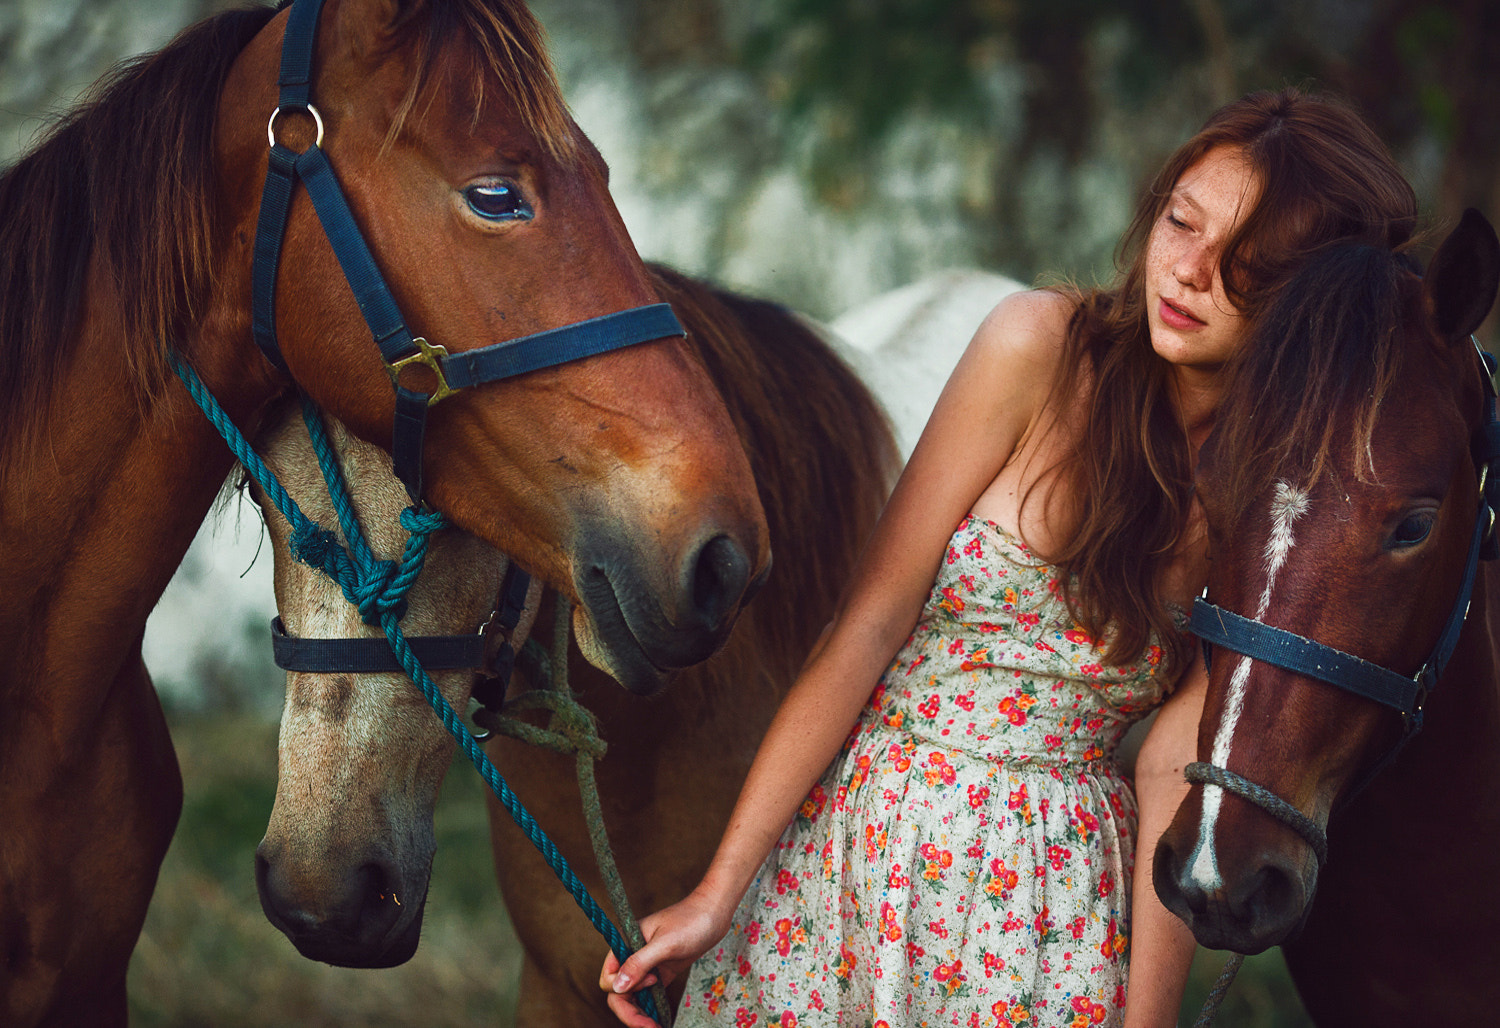 Photograph In Love by Evgeny Tchebotarev on 500px